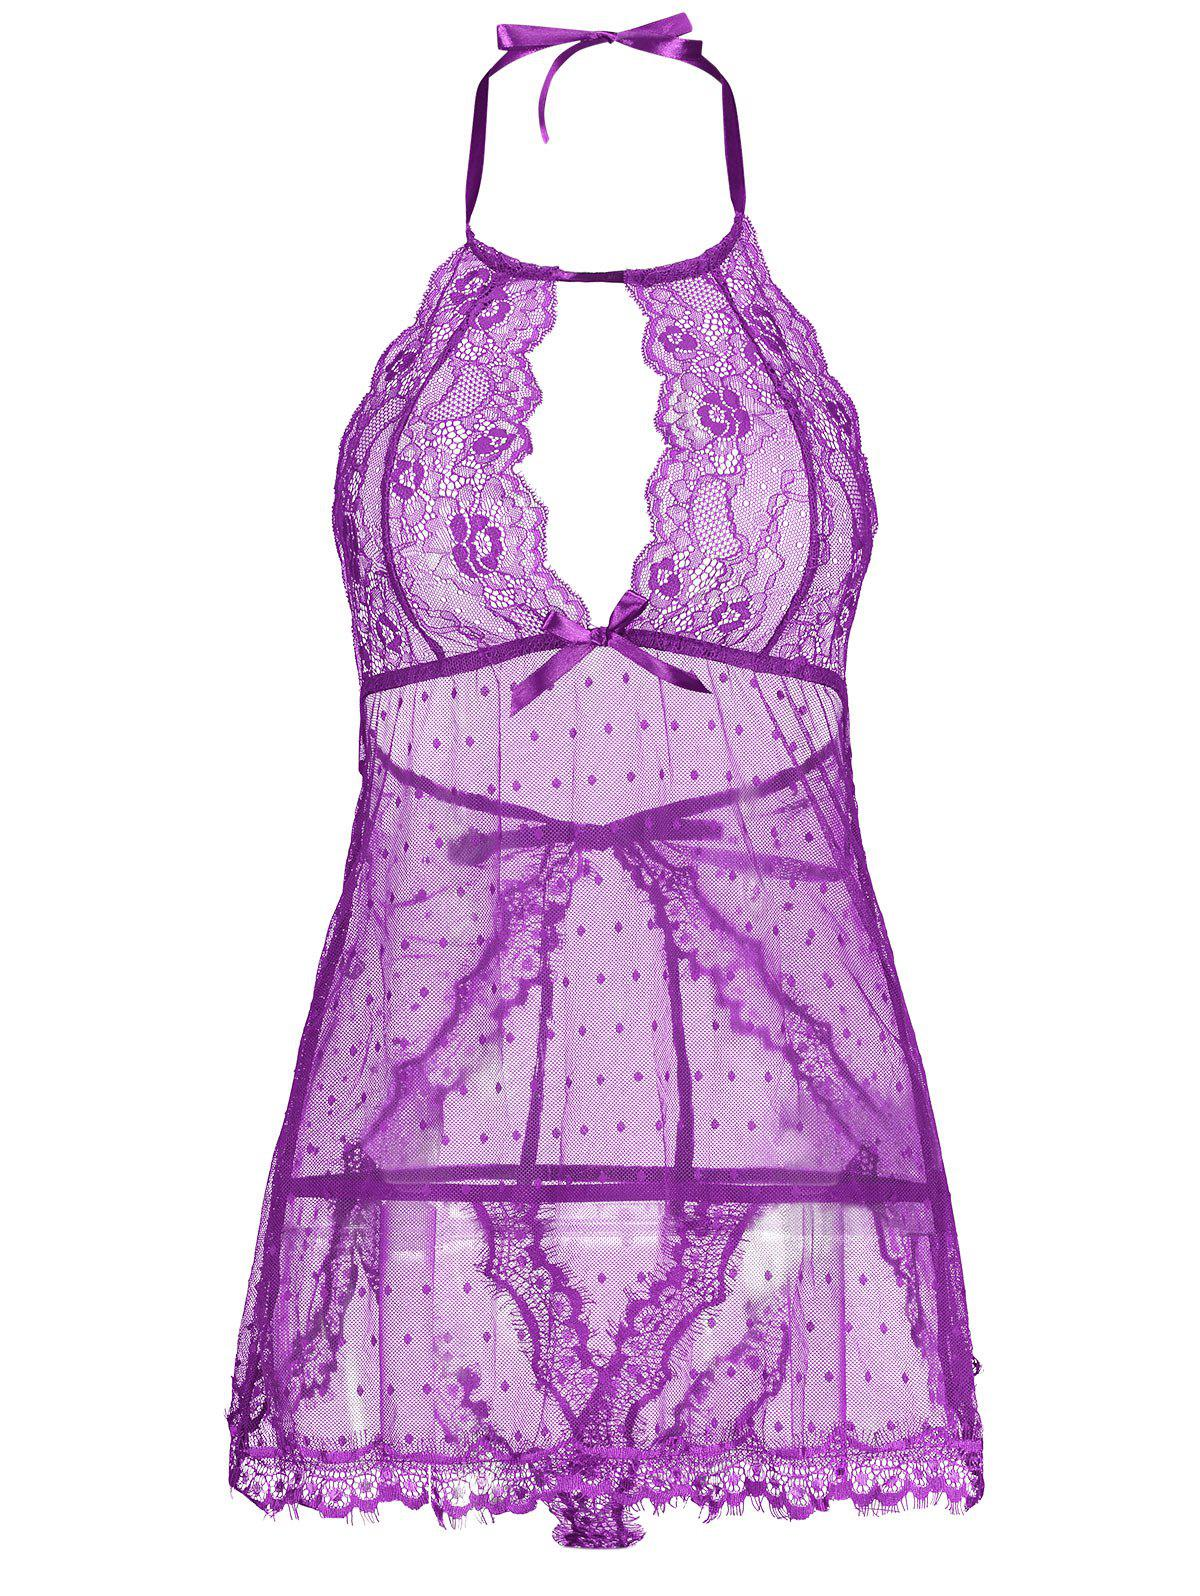 Lingerie Lace Back Split Sheer Dress - PURPLE M